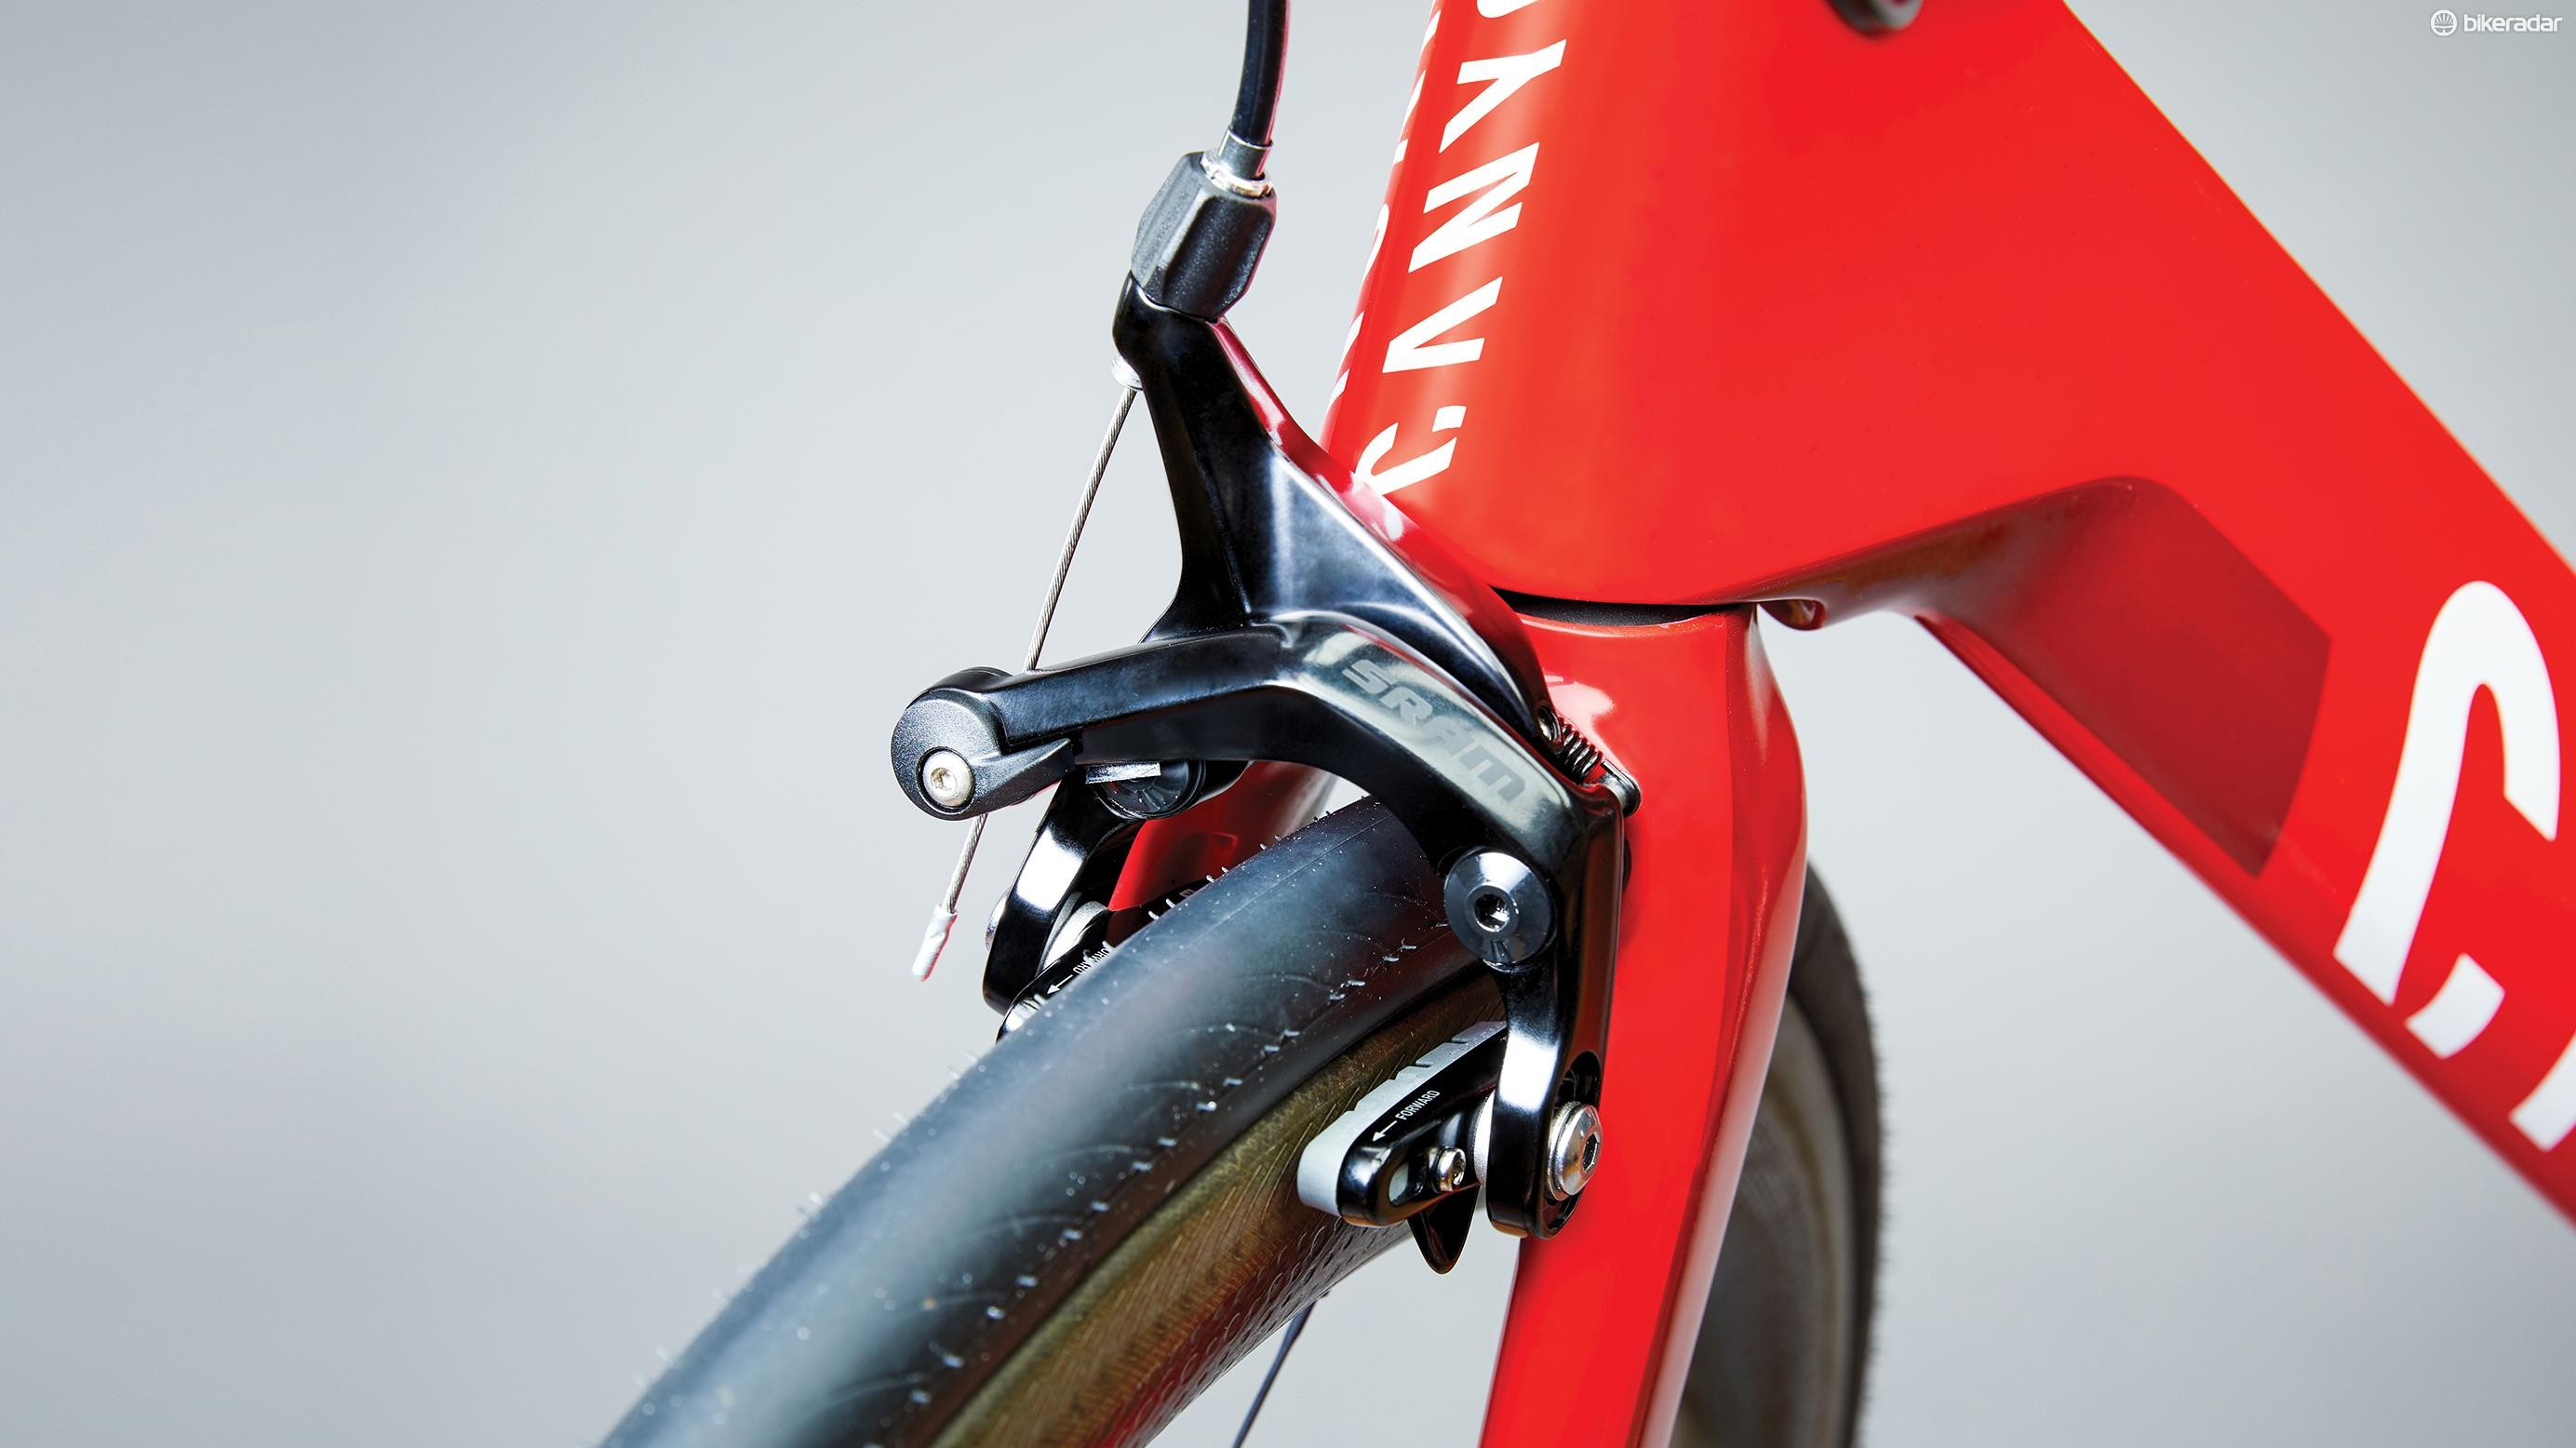 SRAM was last to the direct-mount party with the non-series S-900 brake